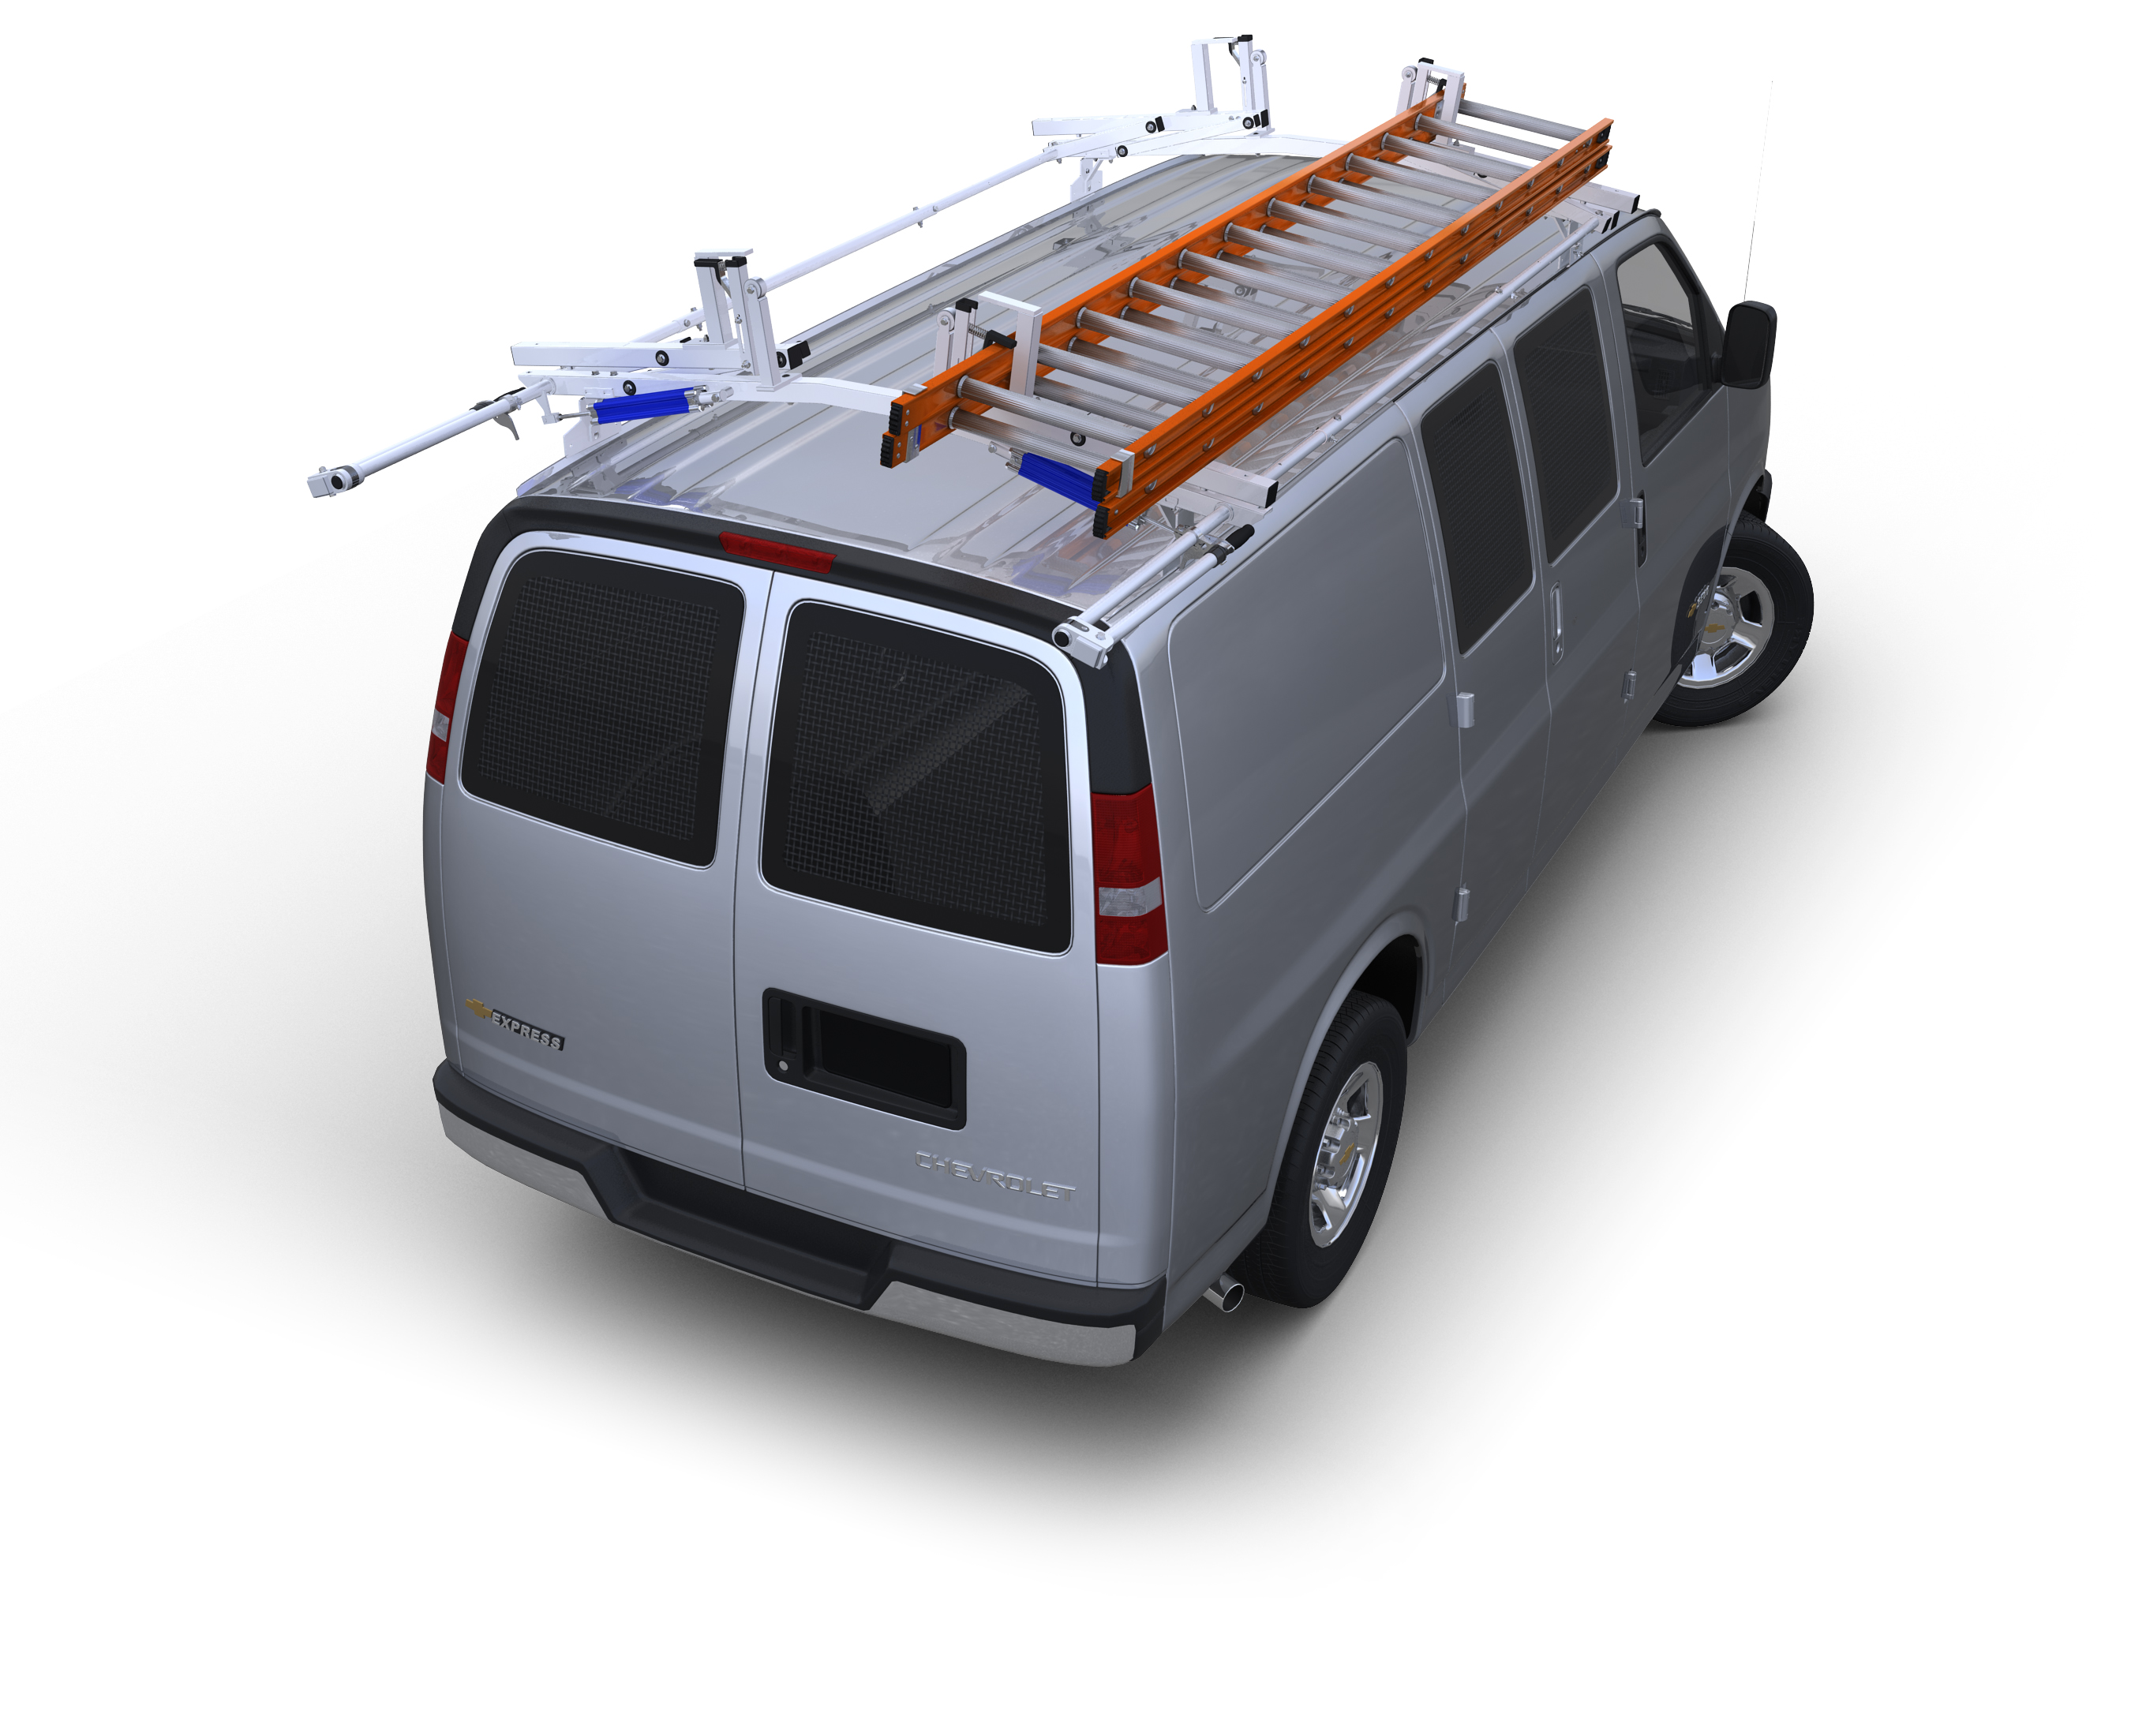 2014 & Newer Transit Connect Long WB Base Van Package, Steel Shelving - SAVE $60!